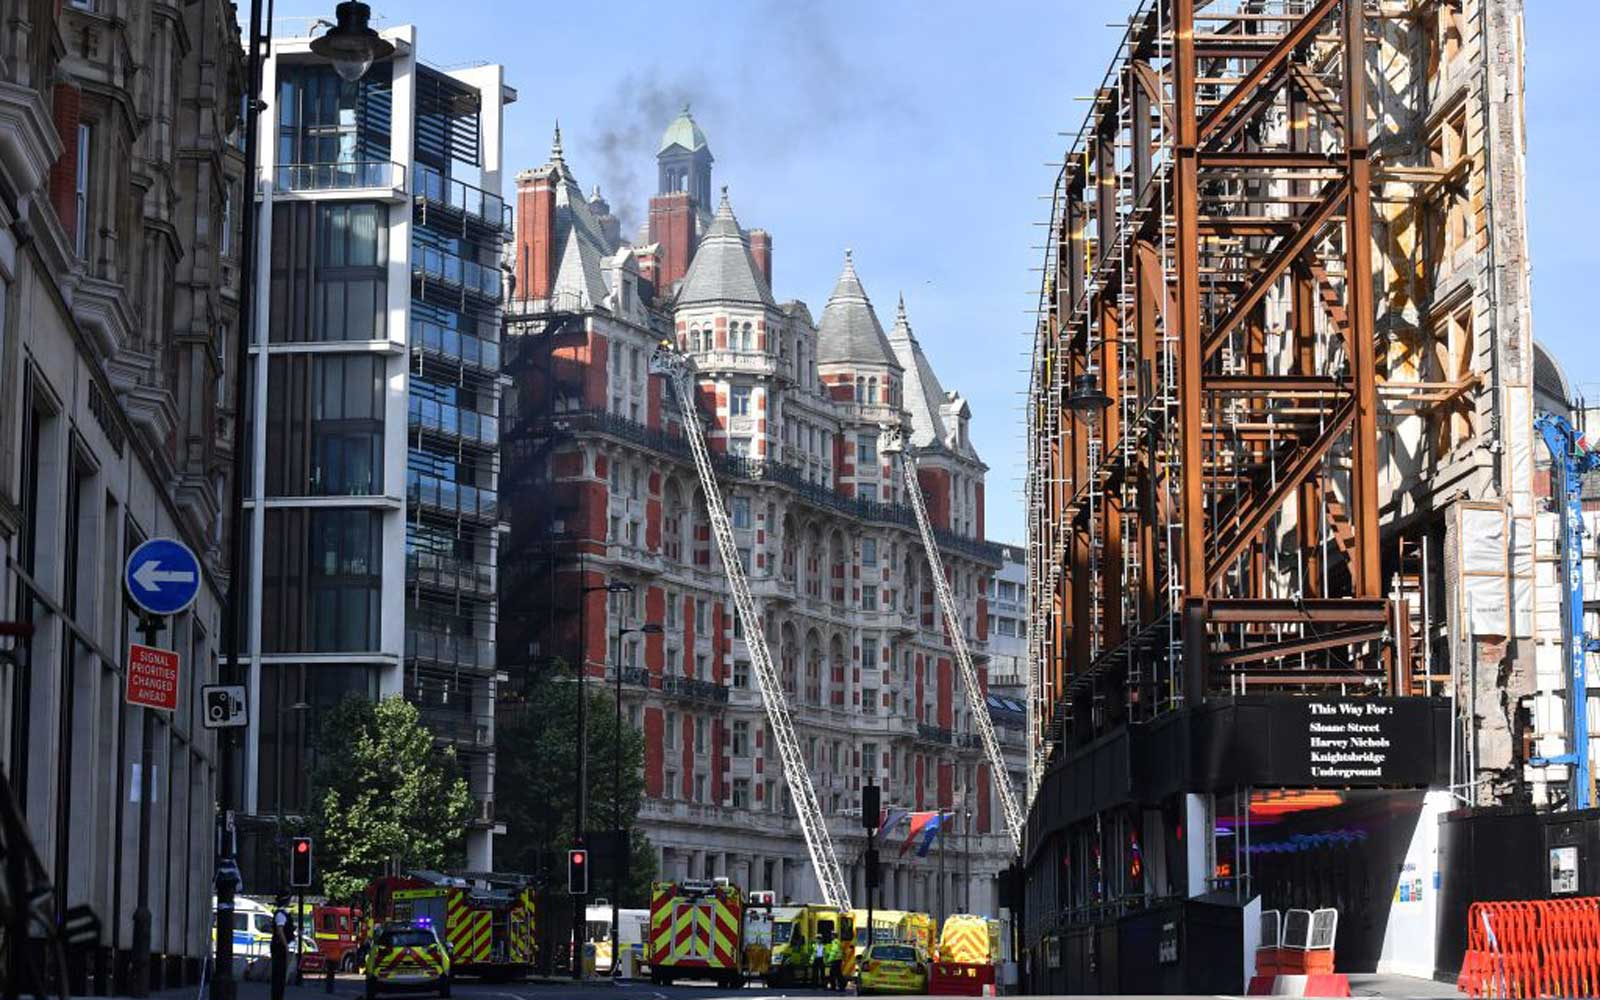 Firefighters tackle a blaze at the Mandarin Oriental hotel in central London